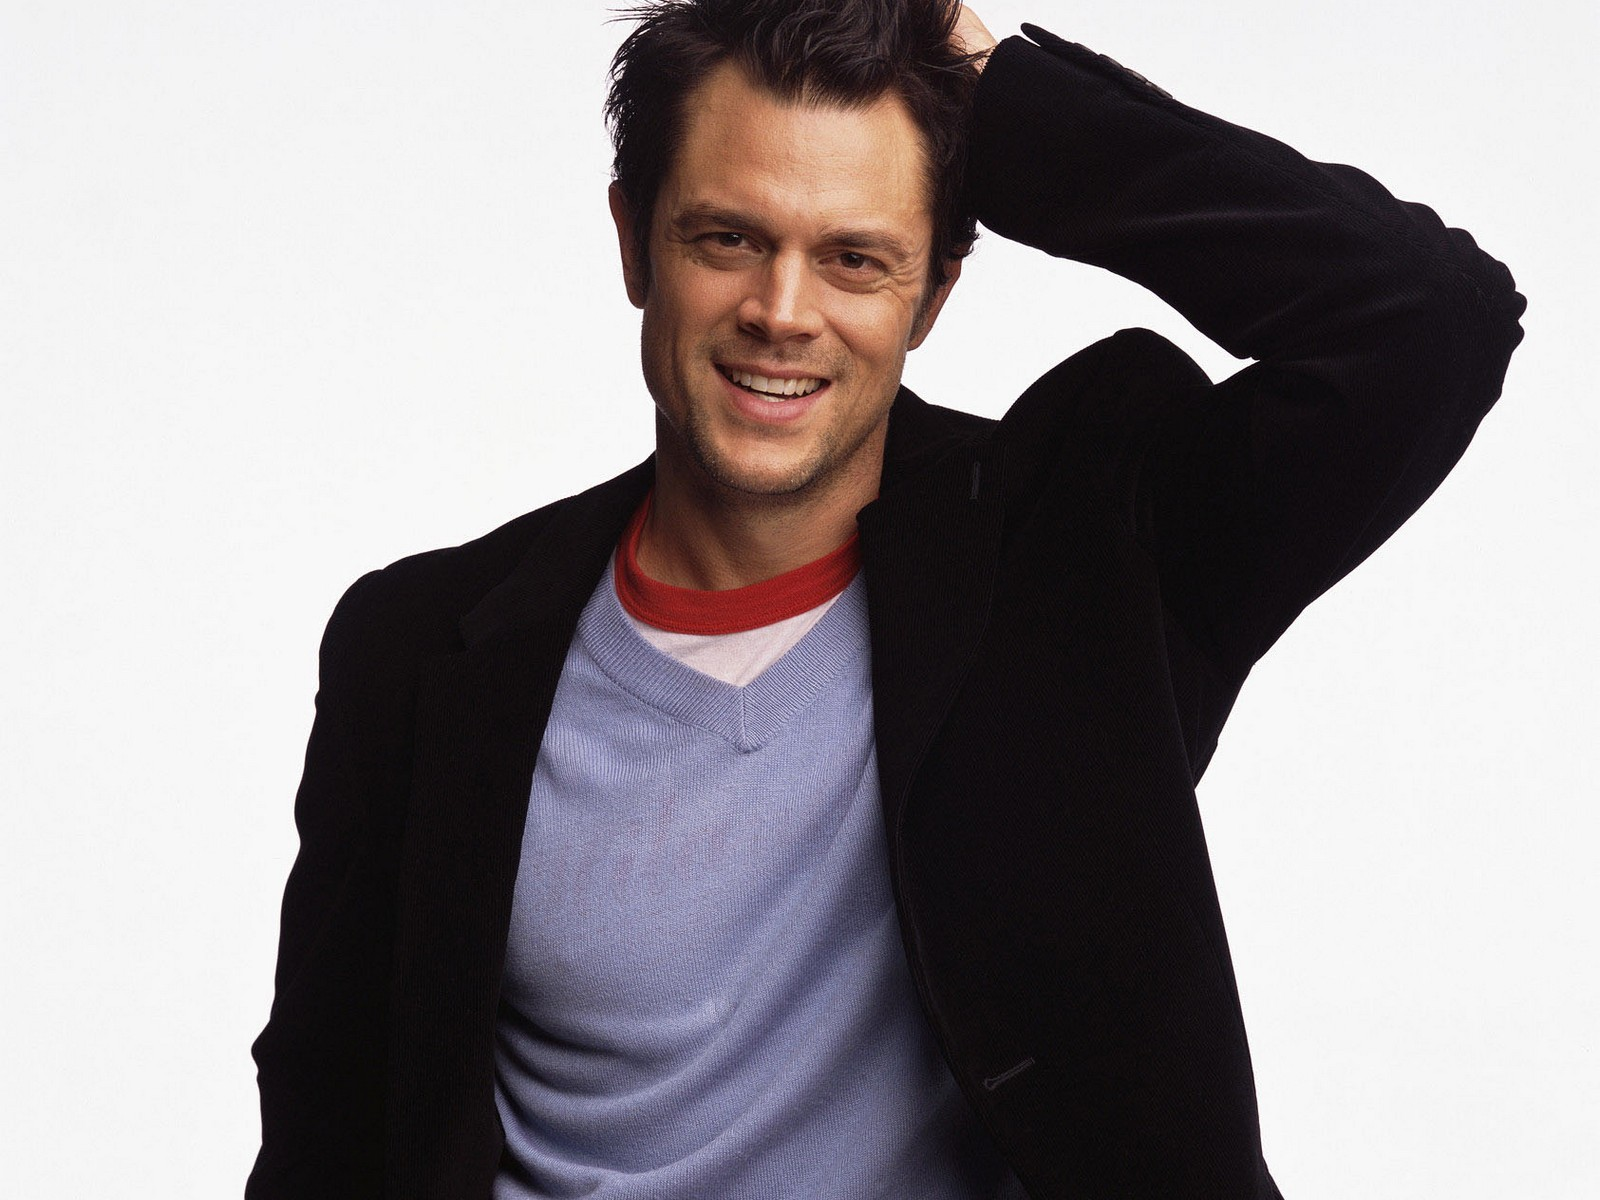 johnny knoxville smile wallpaper 60264